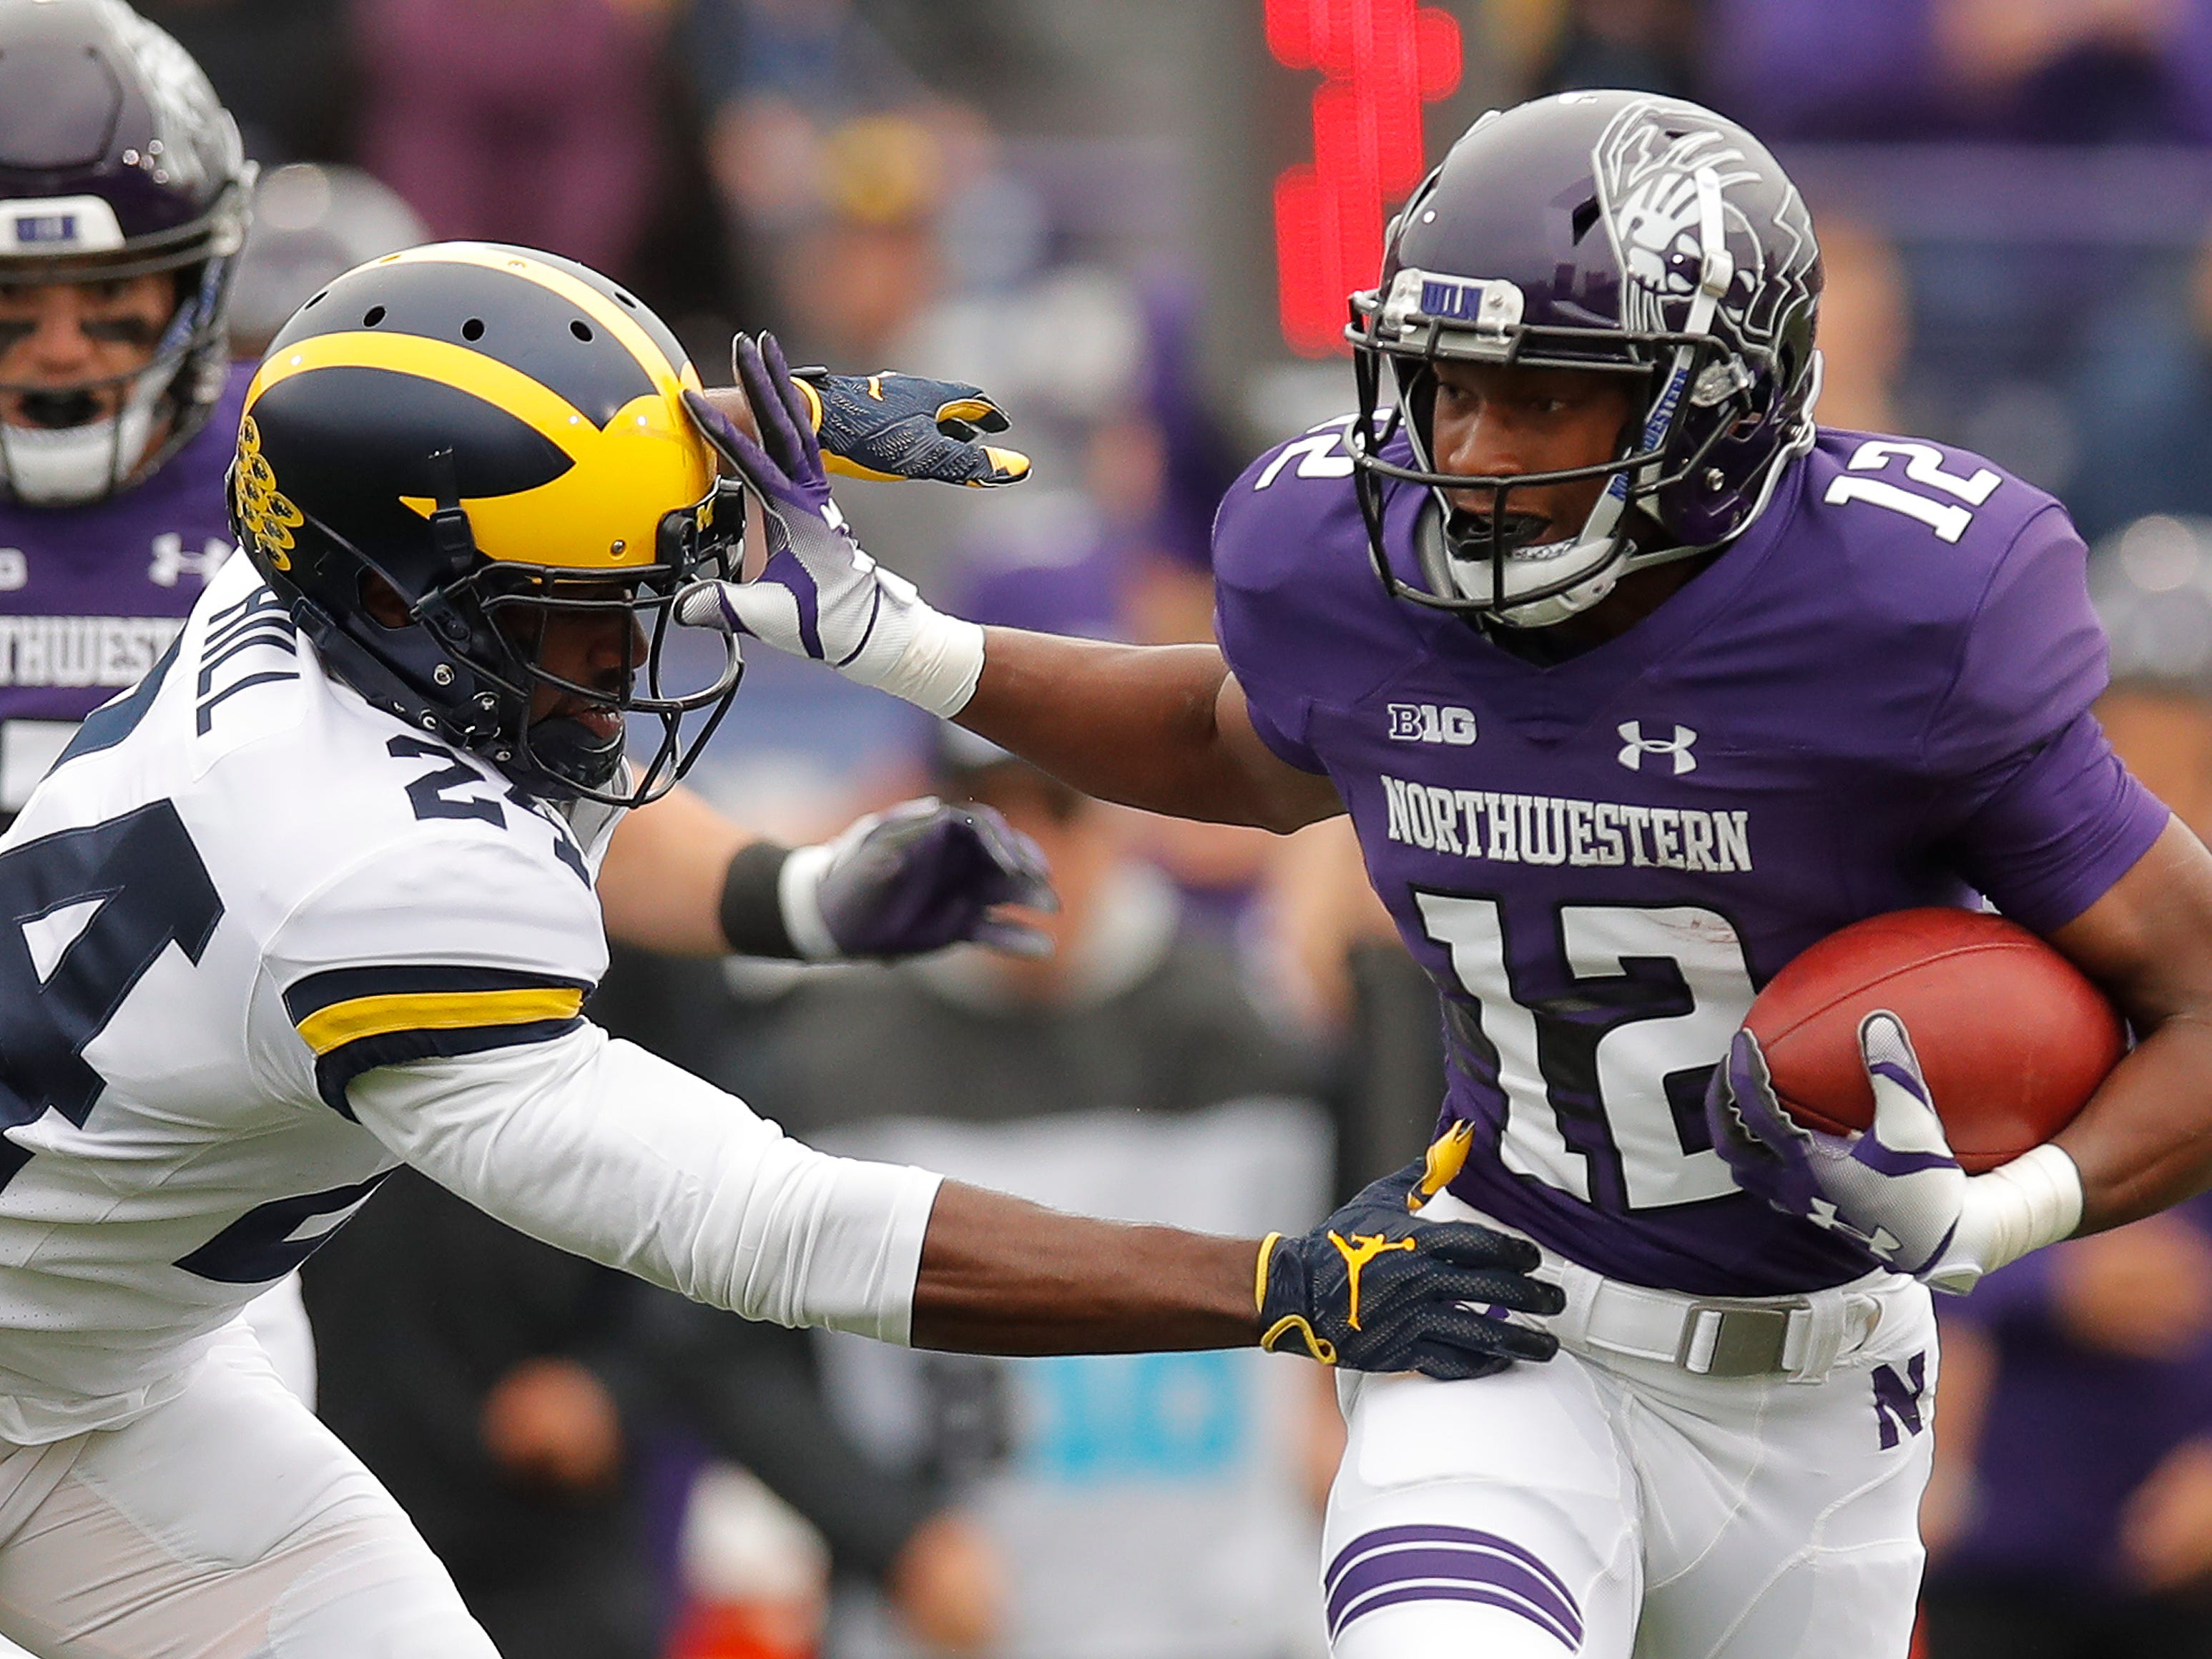 Northwestern's JJ Jefferson pushes off a tackle by Michigan's Lavert Hill during the first half Saturday, Sept. 29, 2018, in Evanston, Ill.